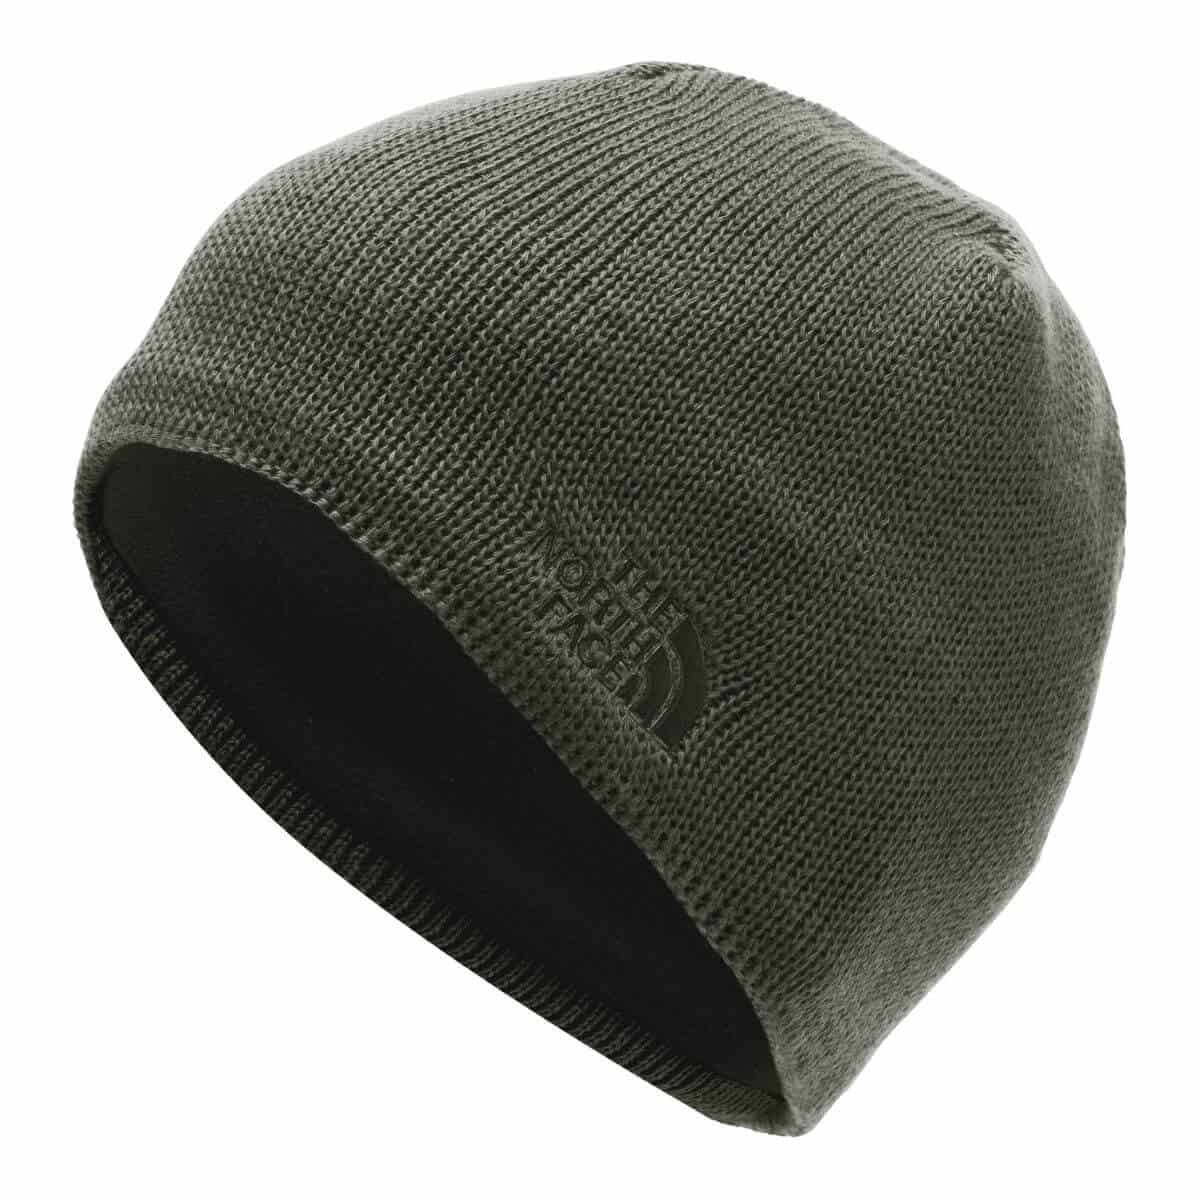 The North Face olive green beanie.